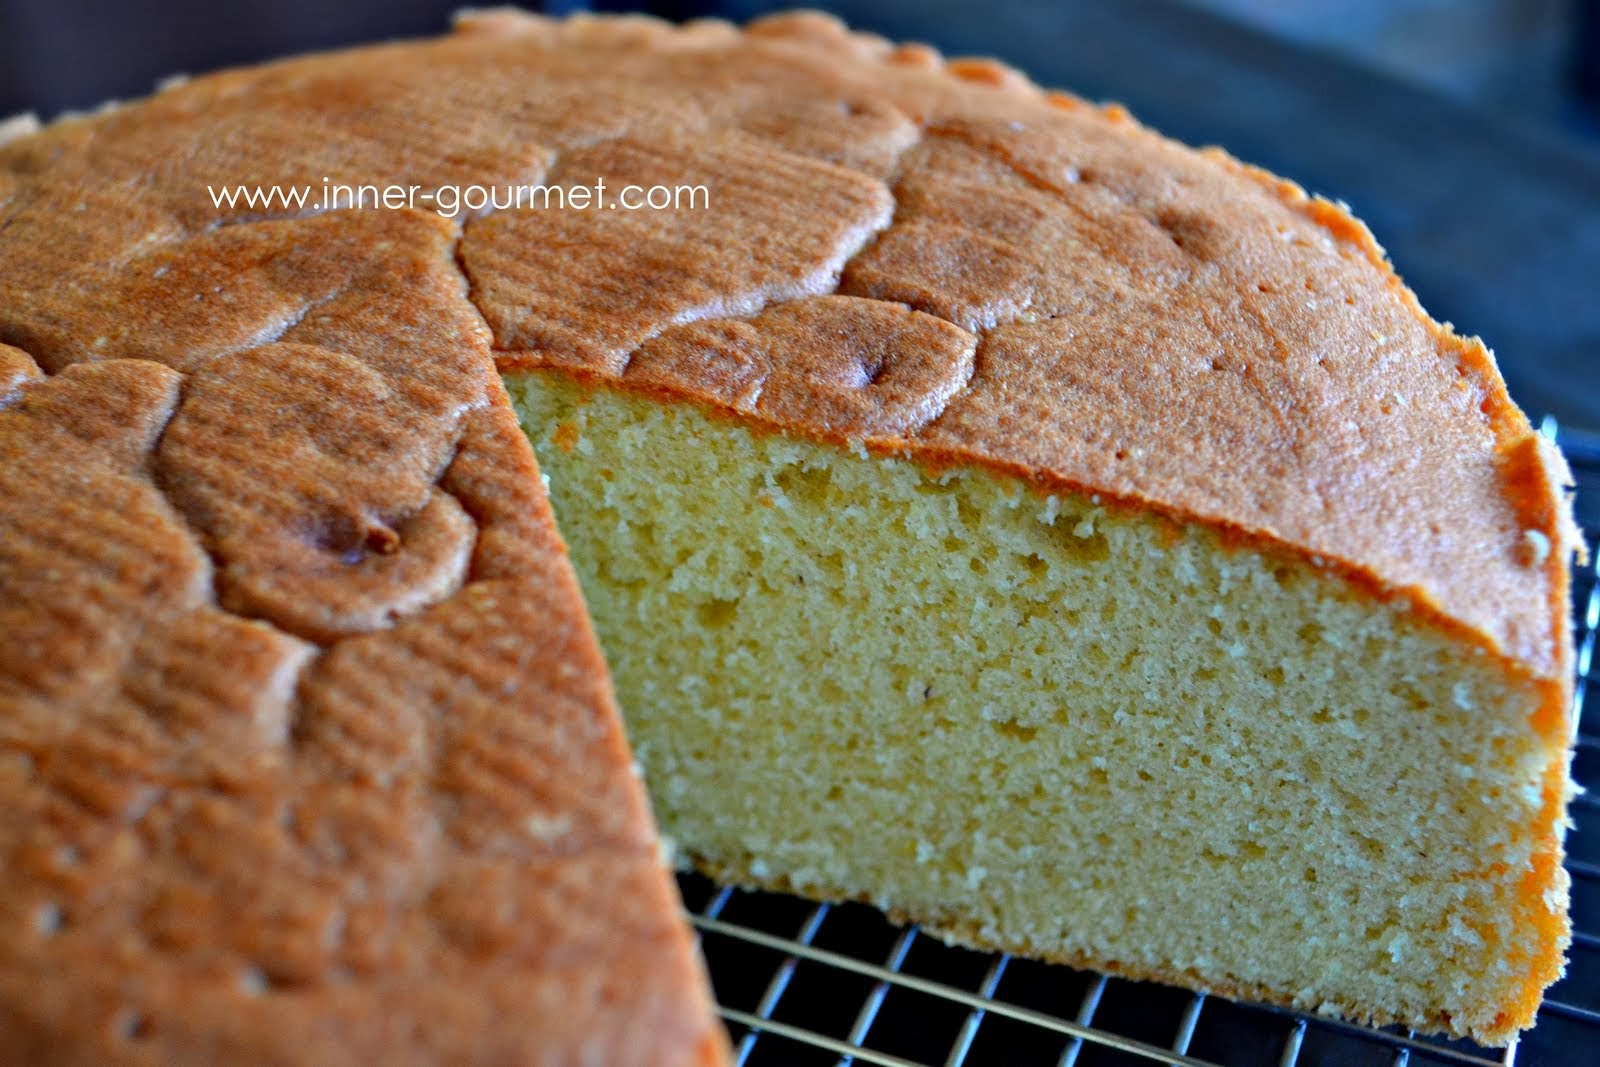 Cake Recipe Light And Fluffy: A Light And Fluffy Sponge Cake